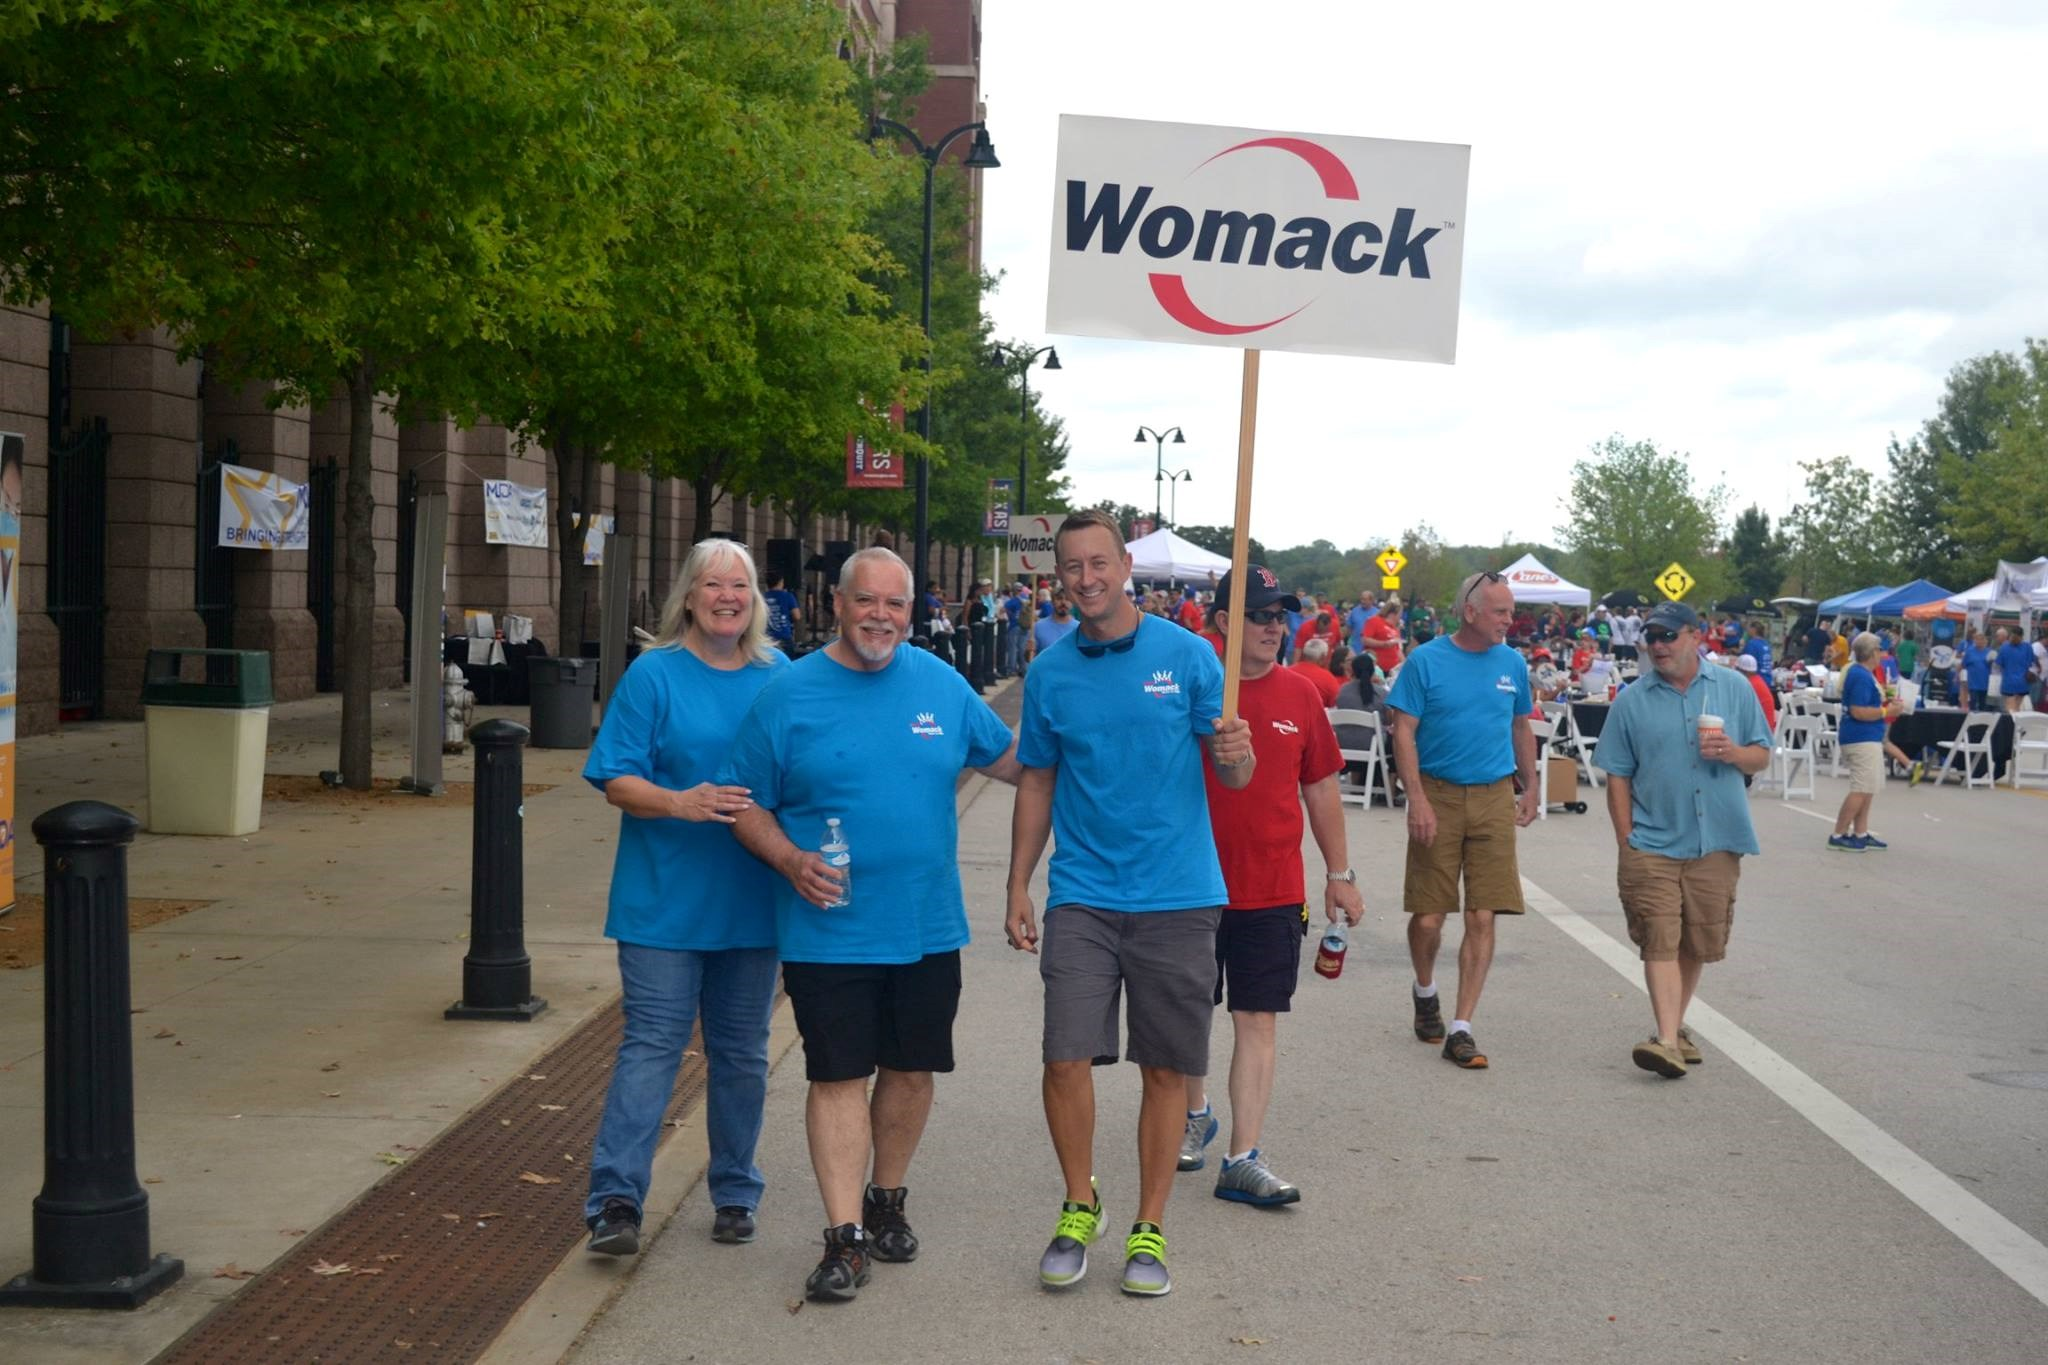 Womack at MDA walk event